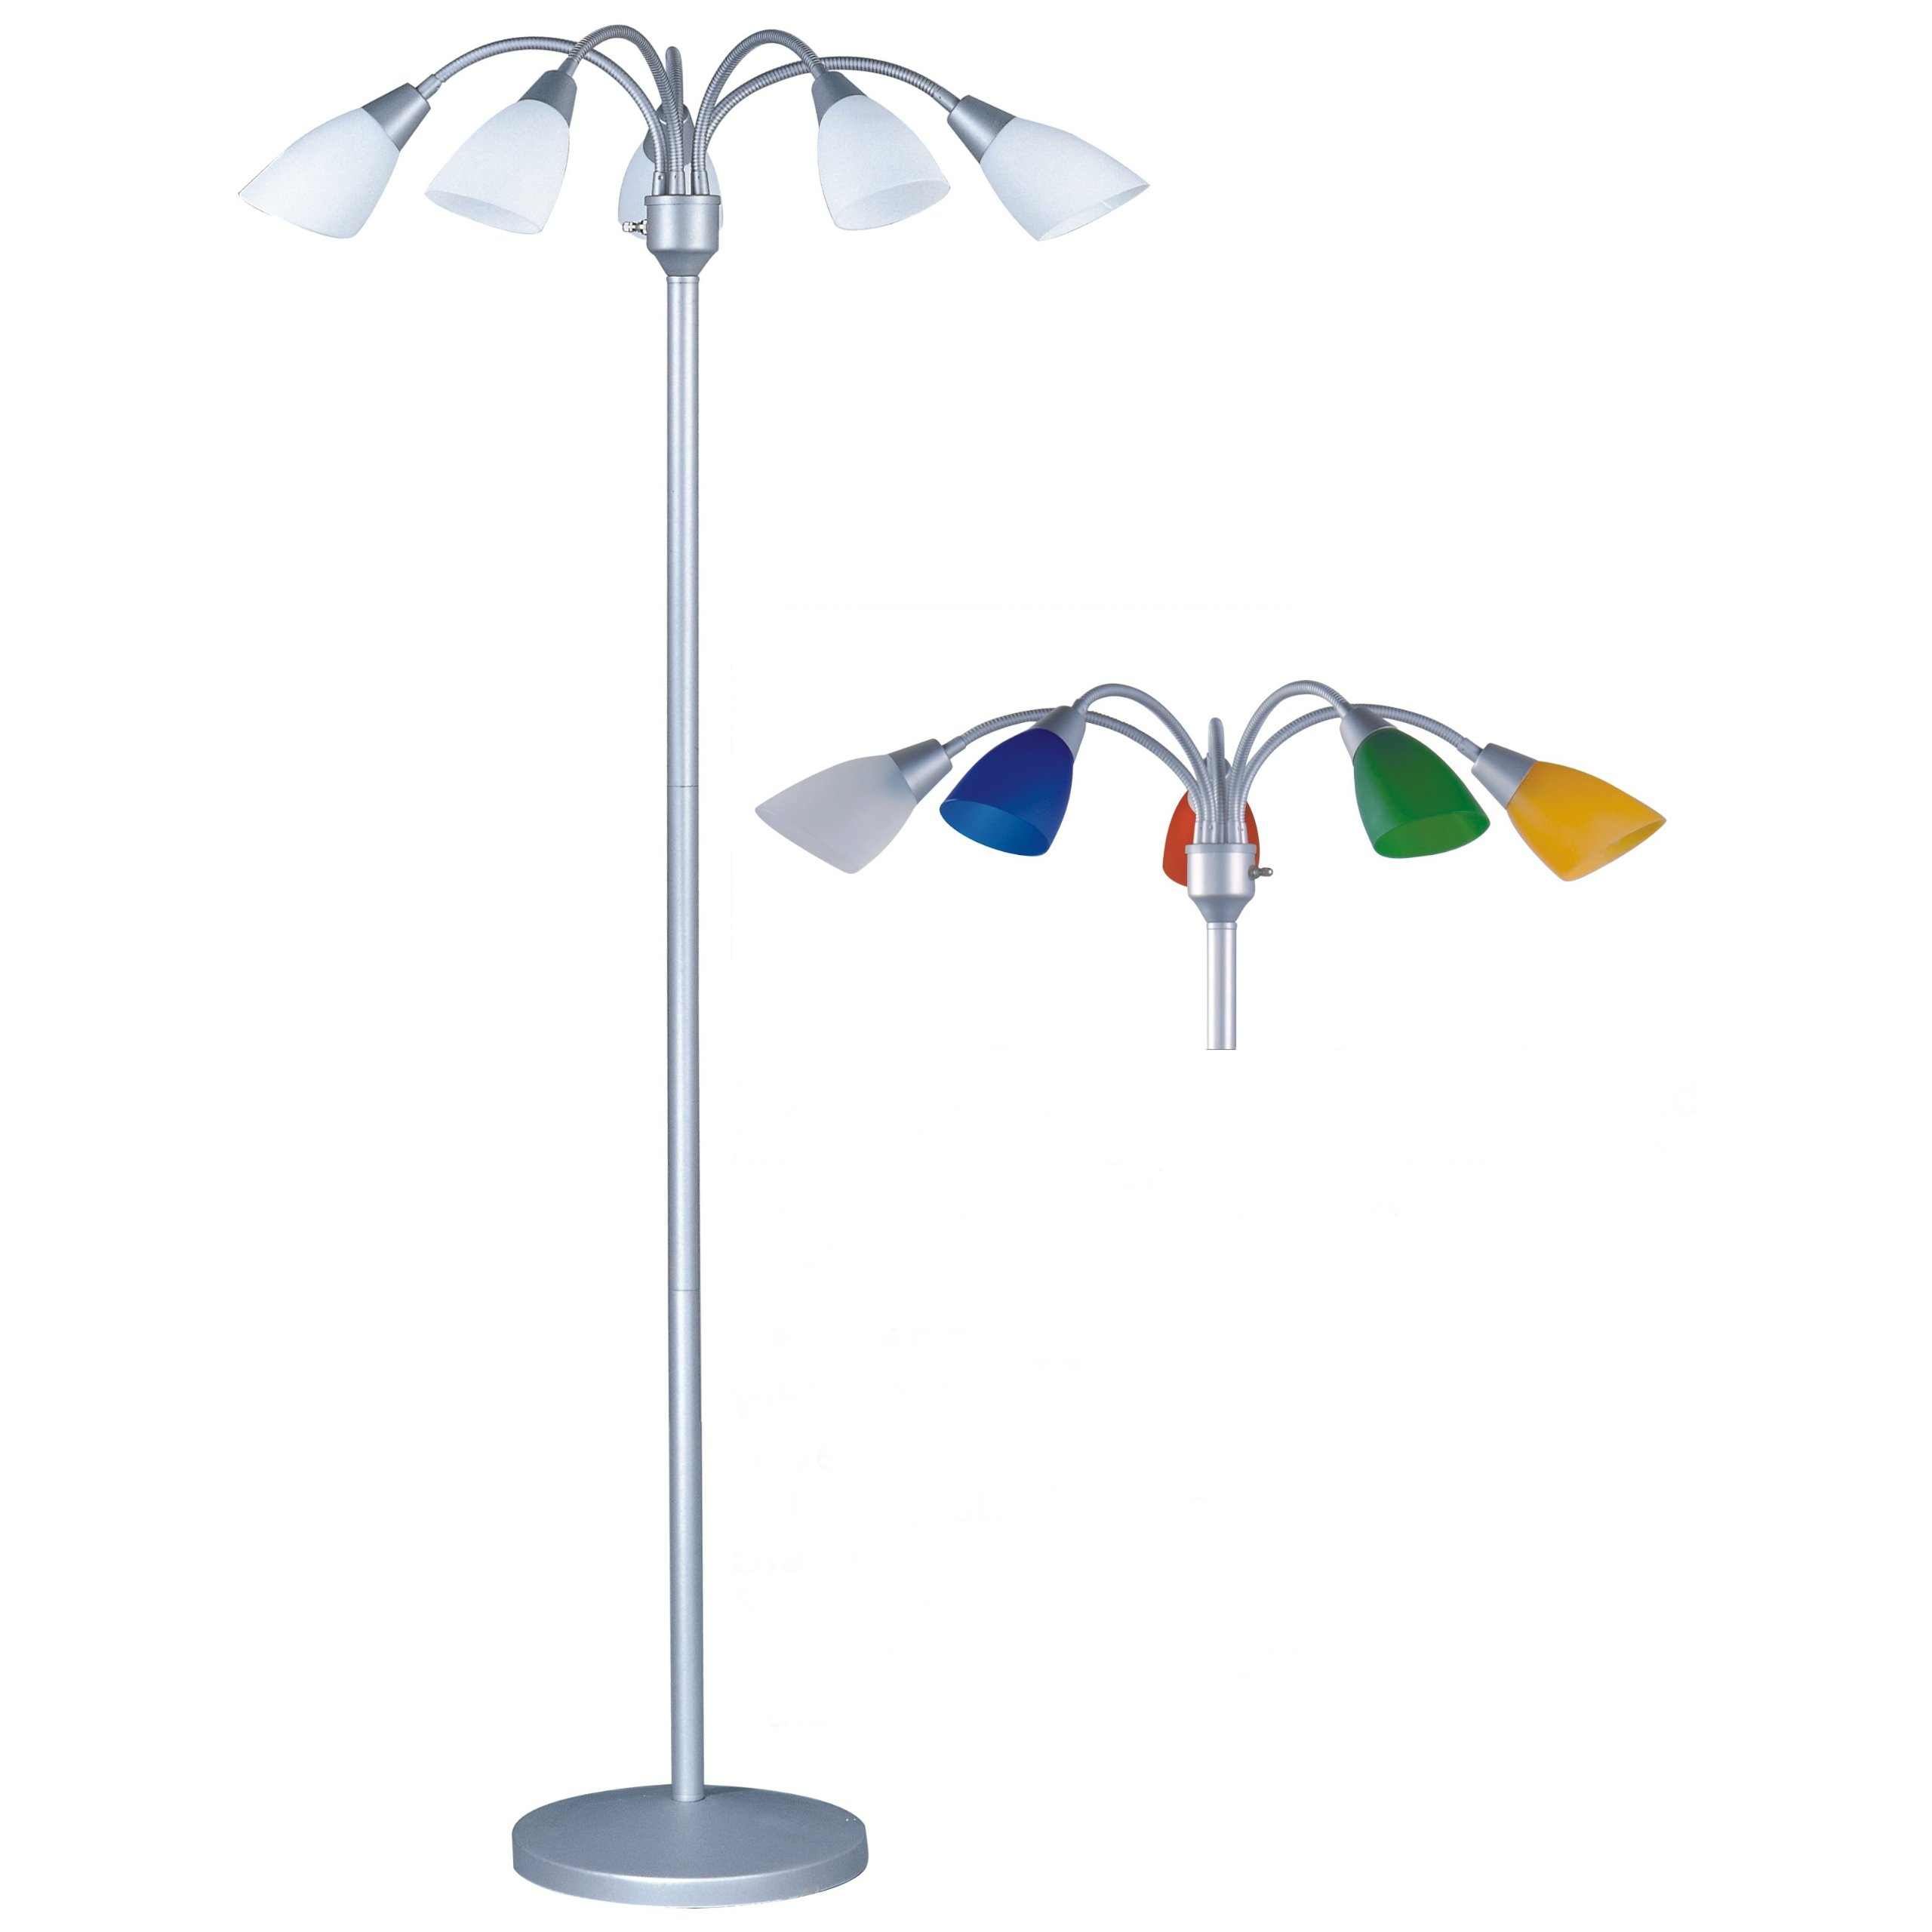 Park Madison Lighting PMF-4655-60 70'' Tall 5 Light Floor Lamp with Fully Adjustable Arms and White and Color Shades Included, 14'' x 13'' x 17''